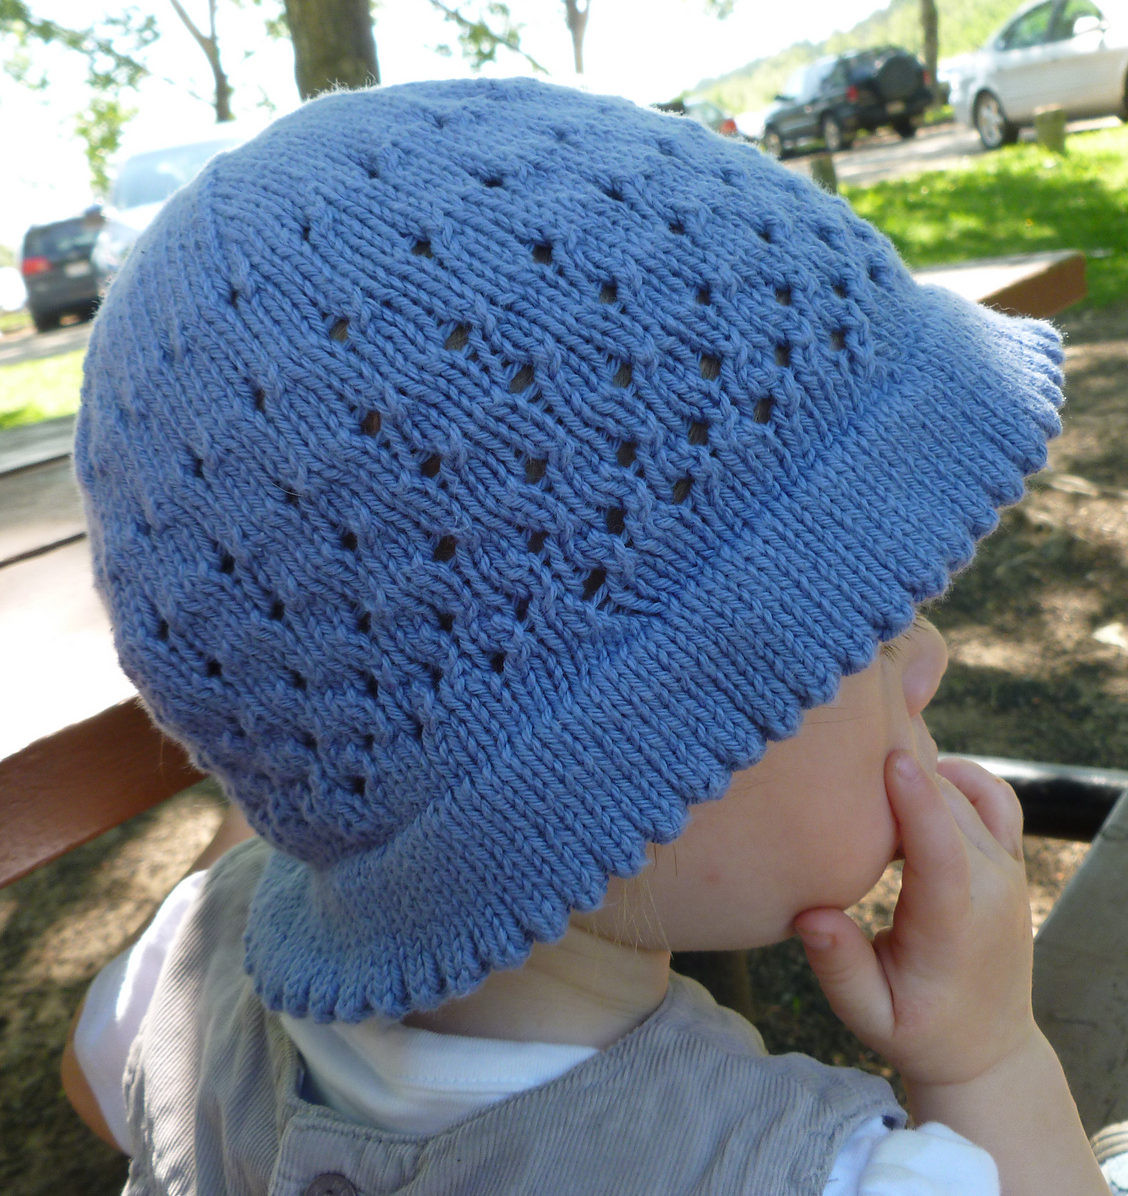 Free Knitting Patterns for Baby Hats Fresh Baby Hats with Brims Knitting Patterns Of Perfect 44 Models Free Knitting Patterns for Baby Hats